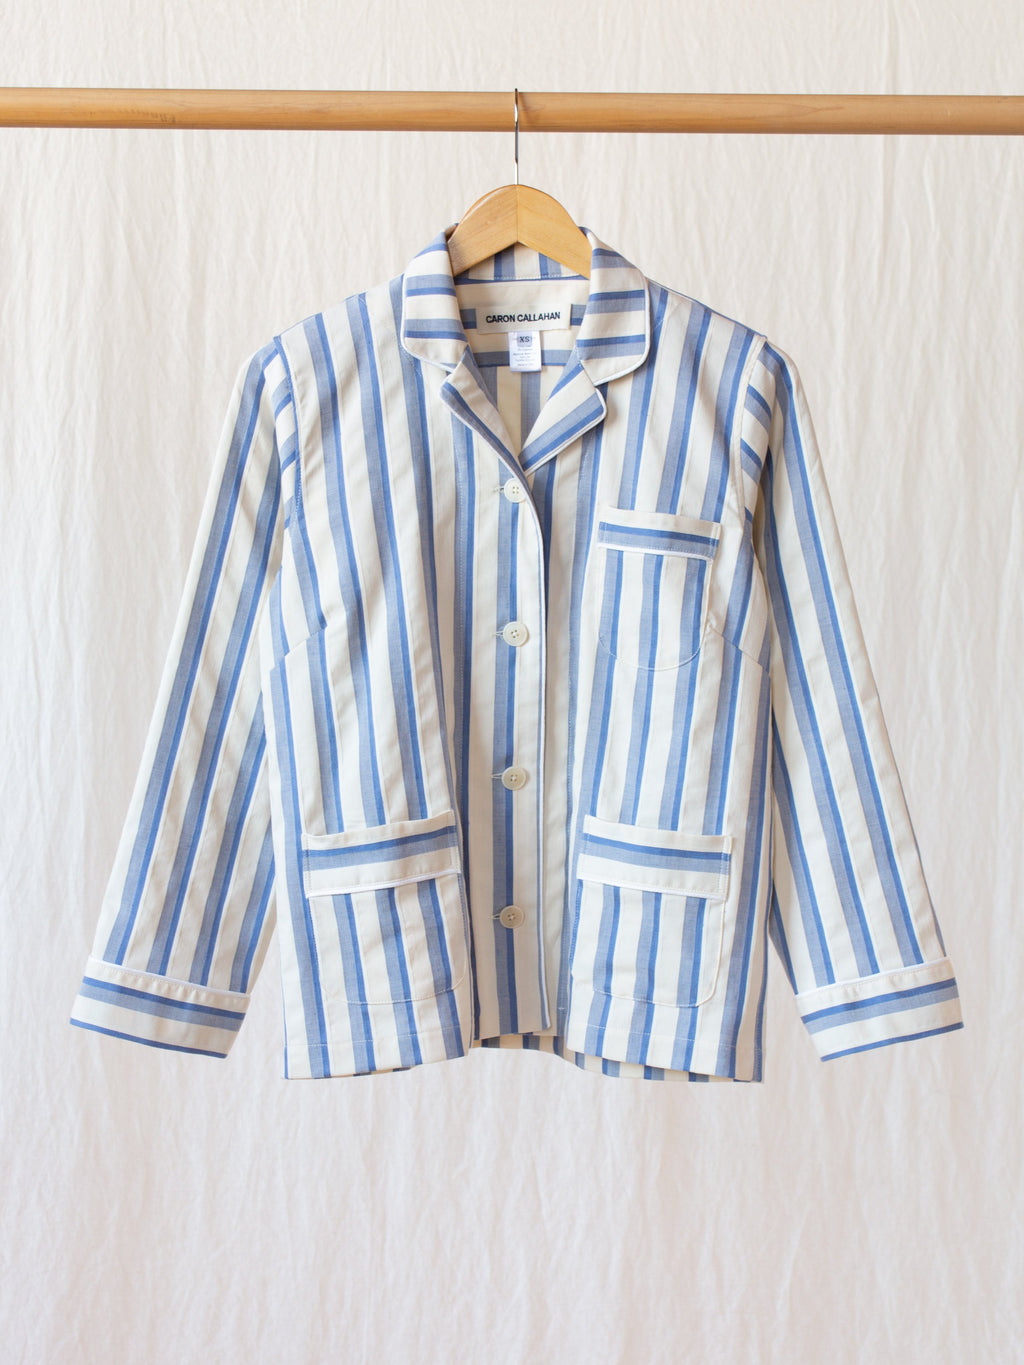 Namu Shop - Caron Callahan Jonis Shirt - Blue Shadow Stripe